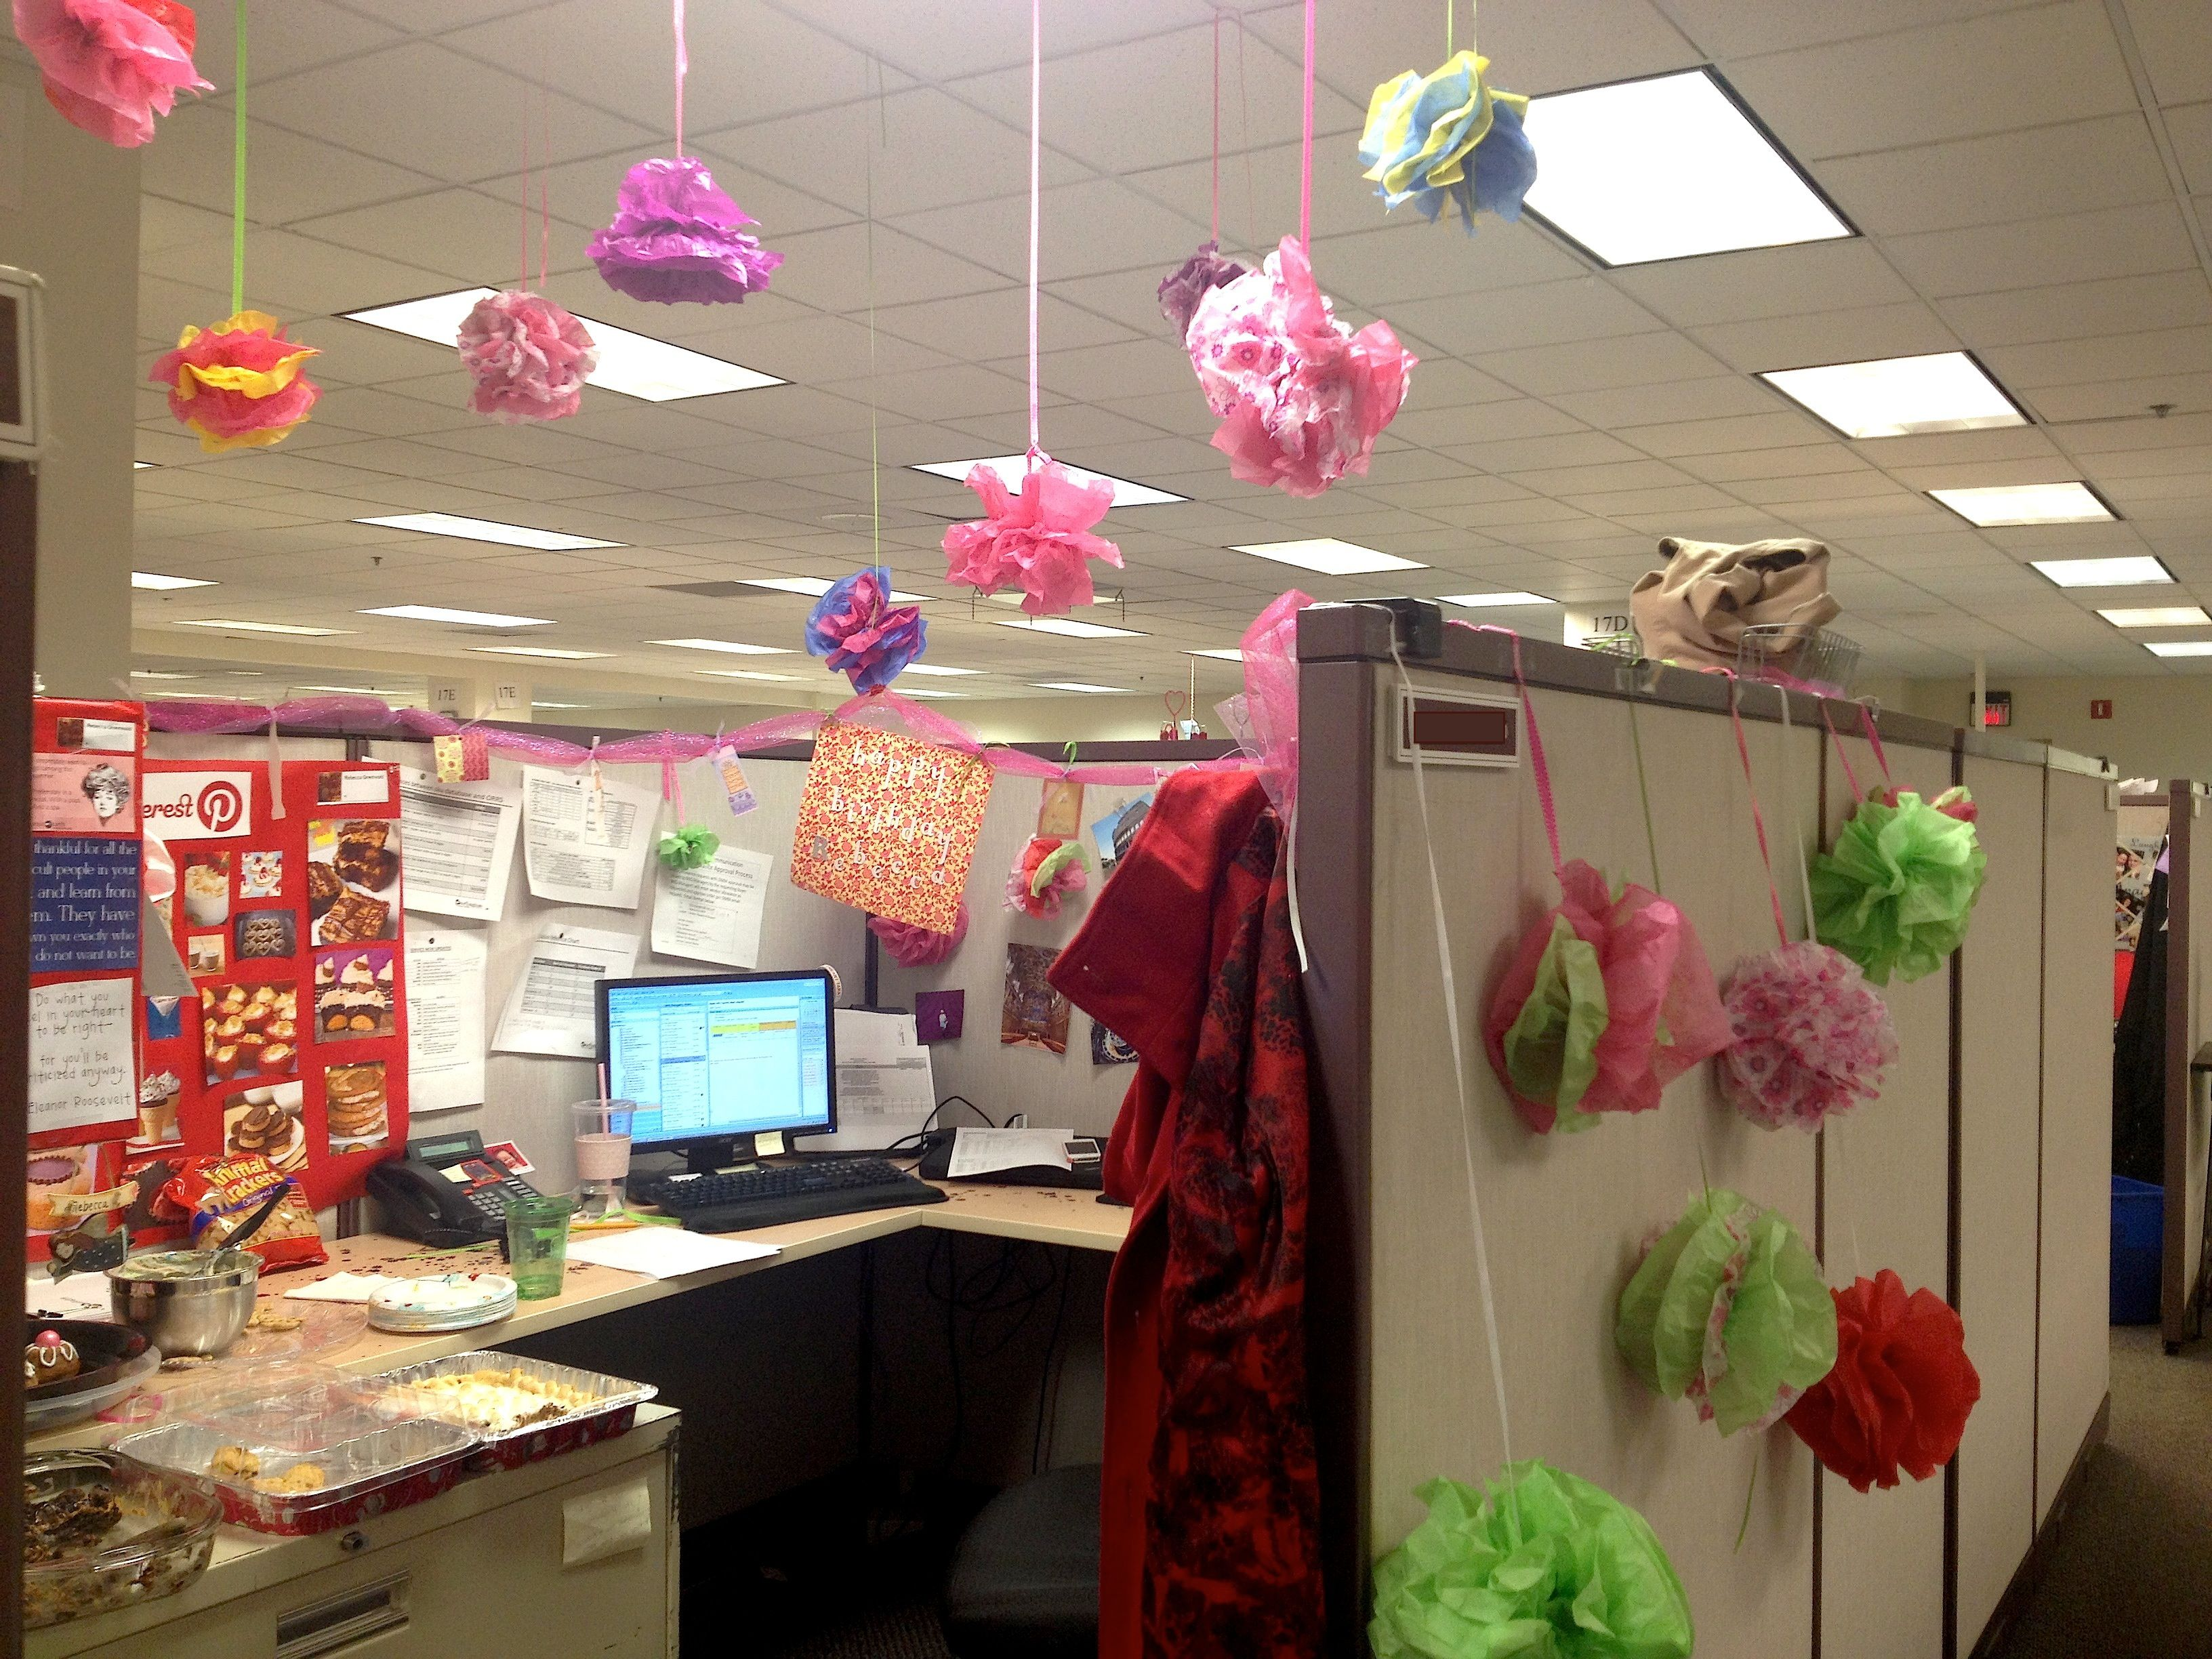 An employee 39 s office decorated for their birthday using for Decoration bureau